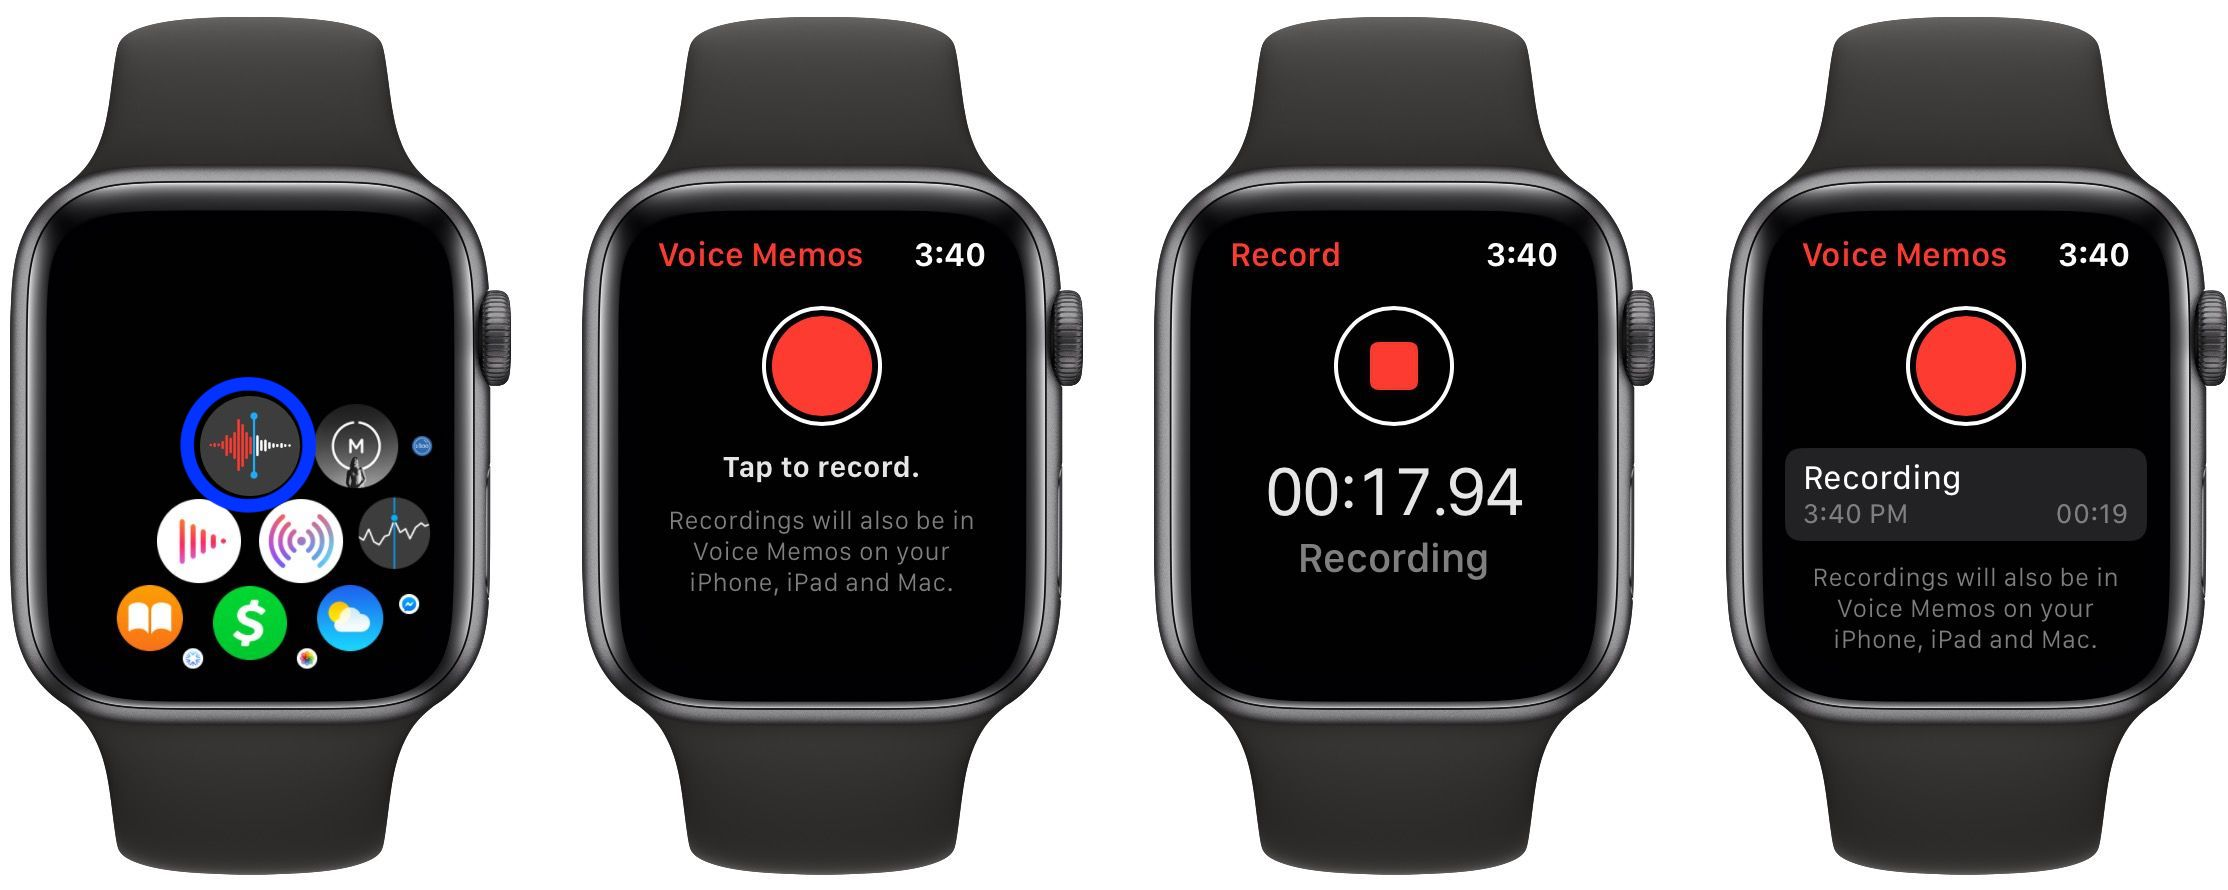 how to record Voice Memos Apple Watch walkthrough 1